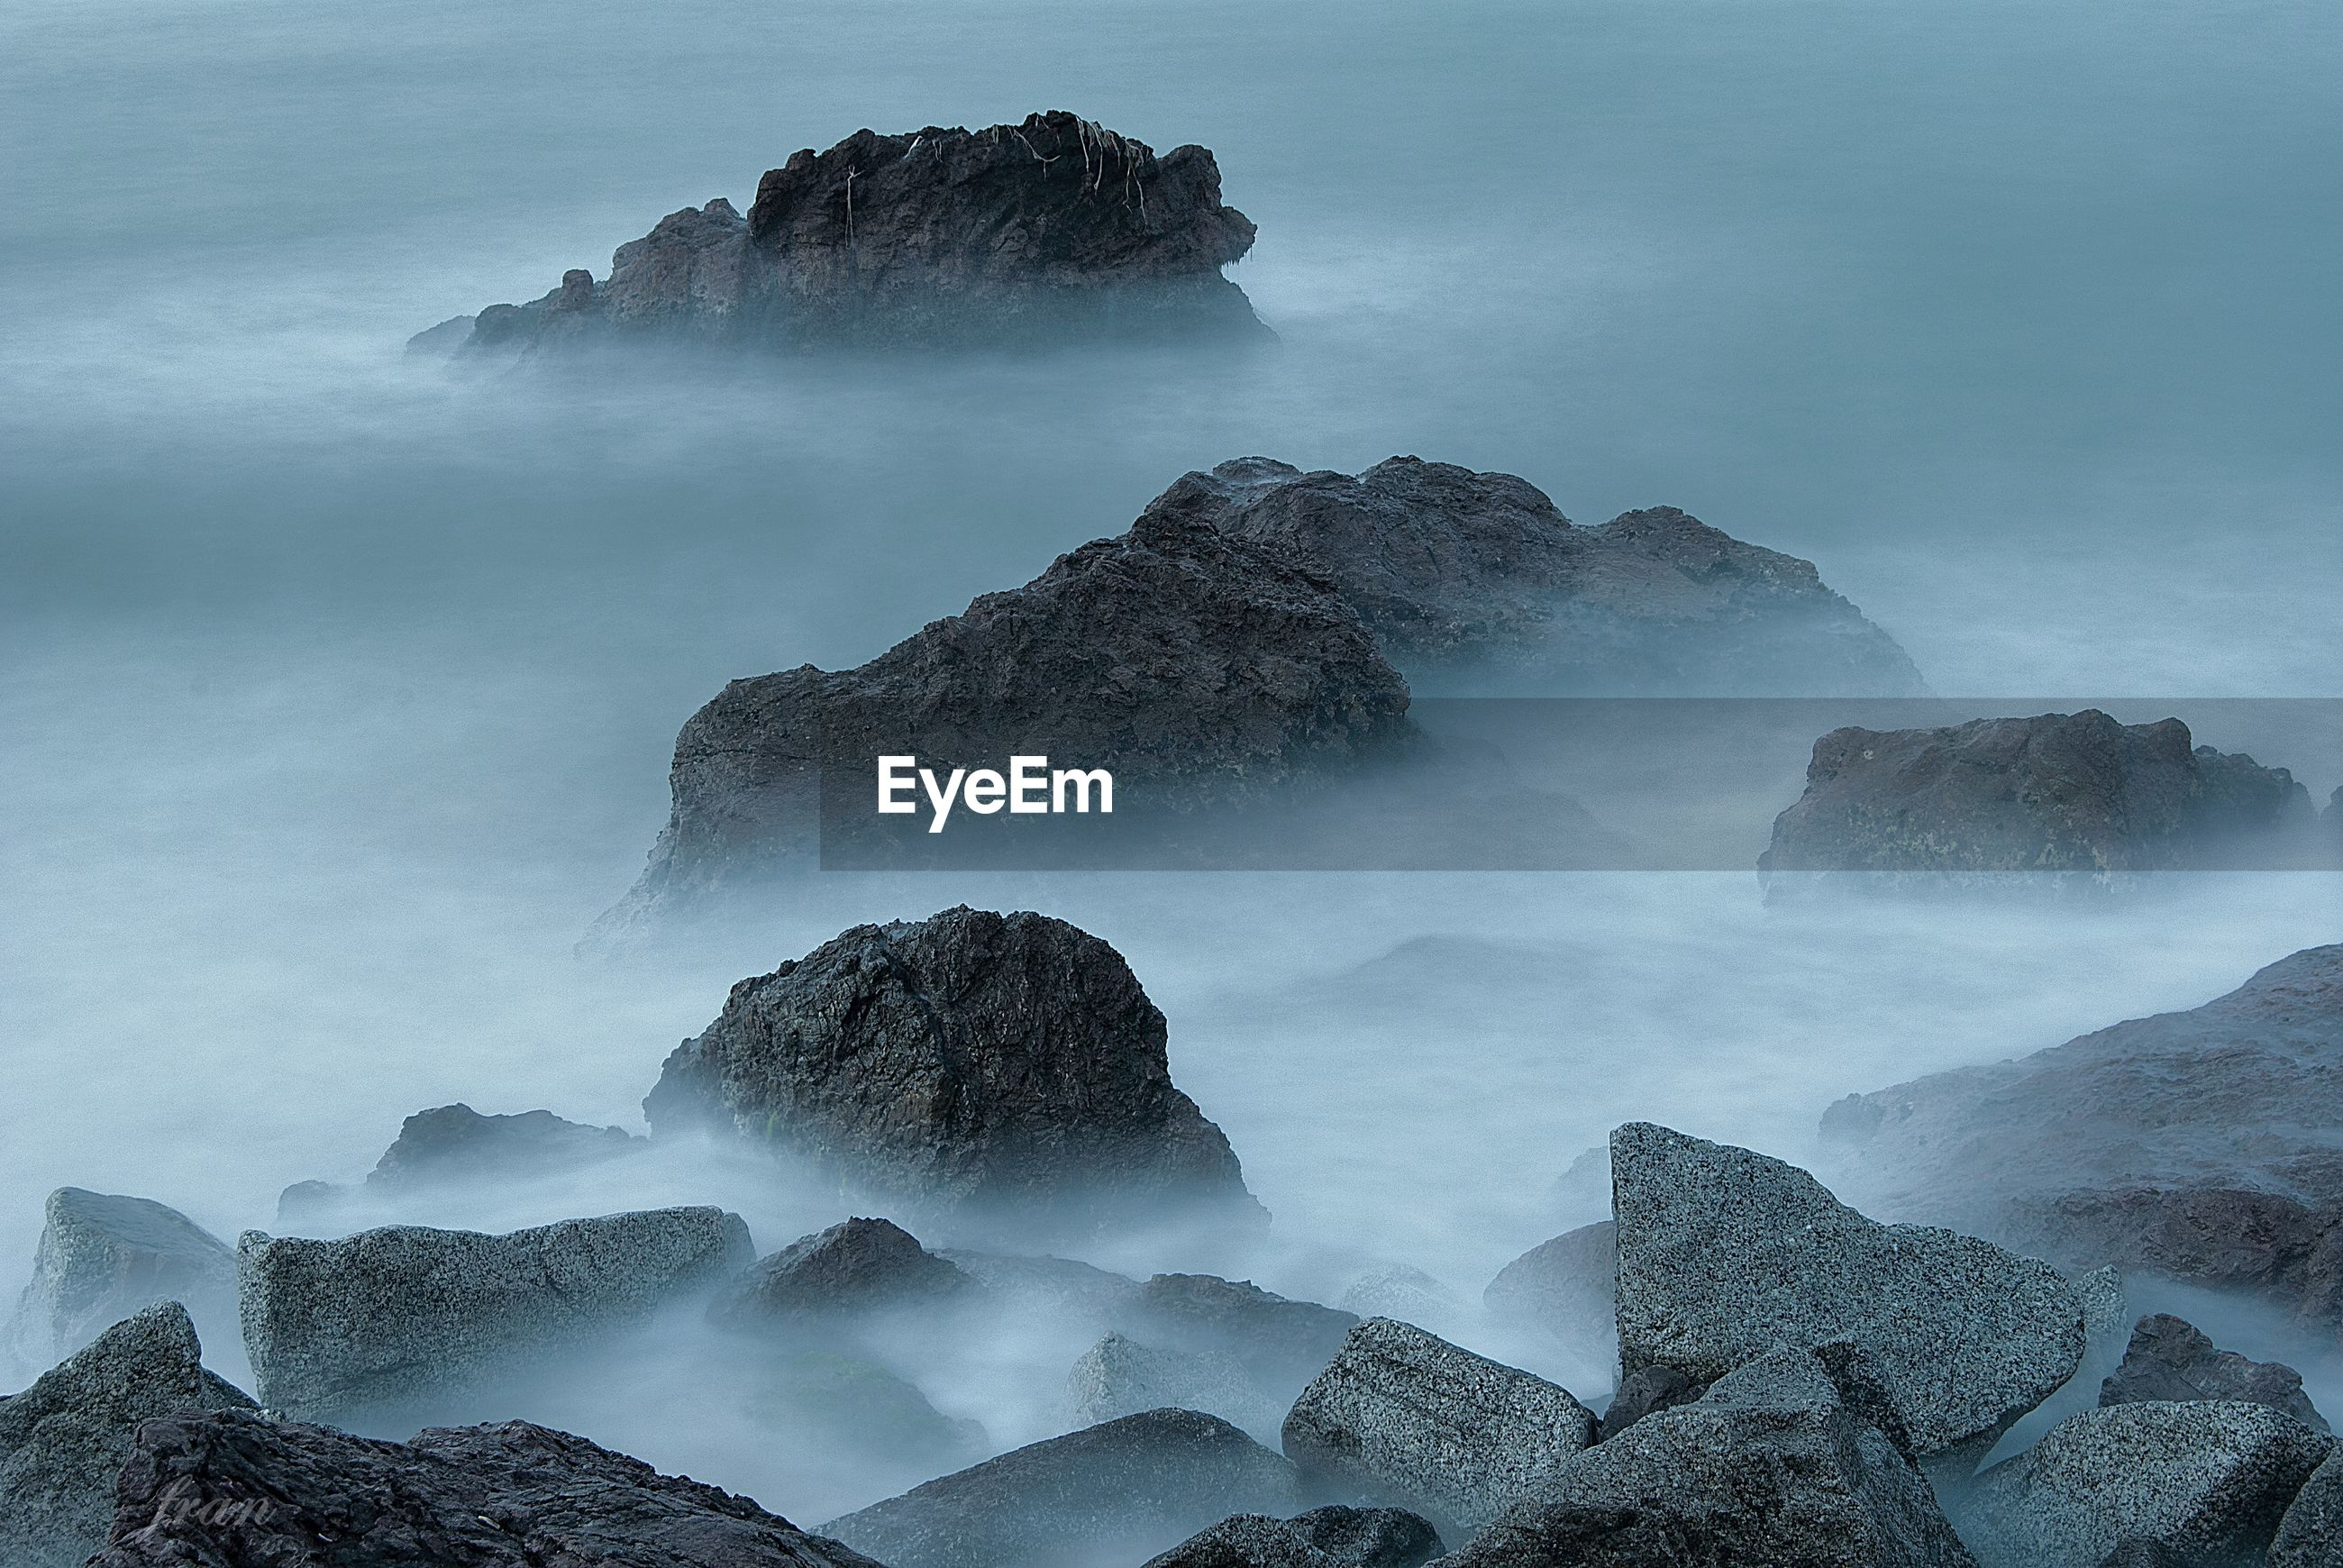 PANORAMIC VIEW OF SEA AND ROCKS